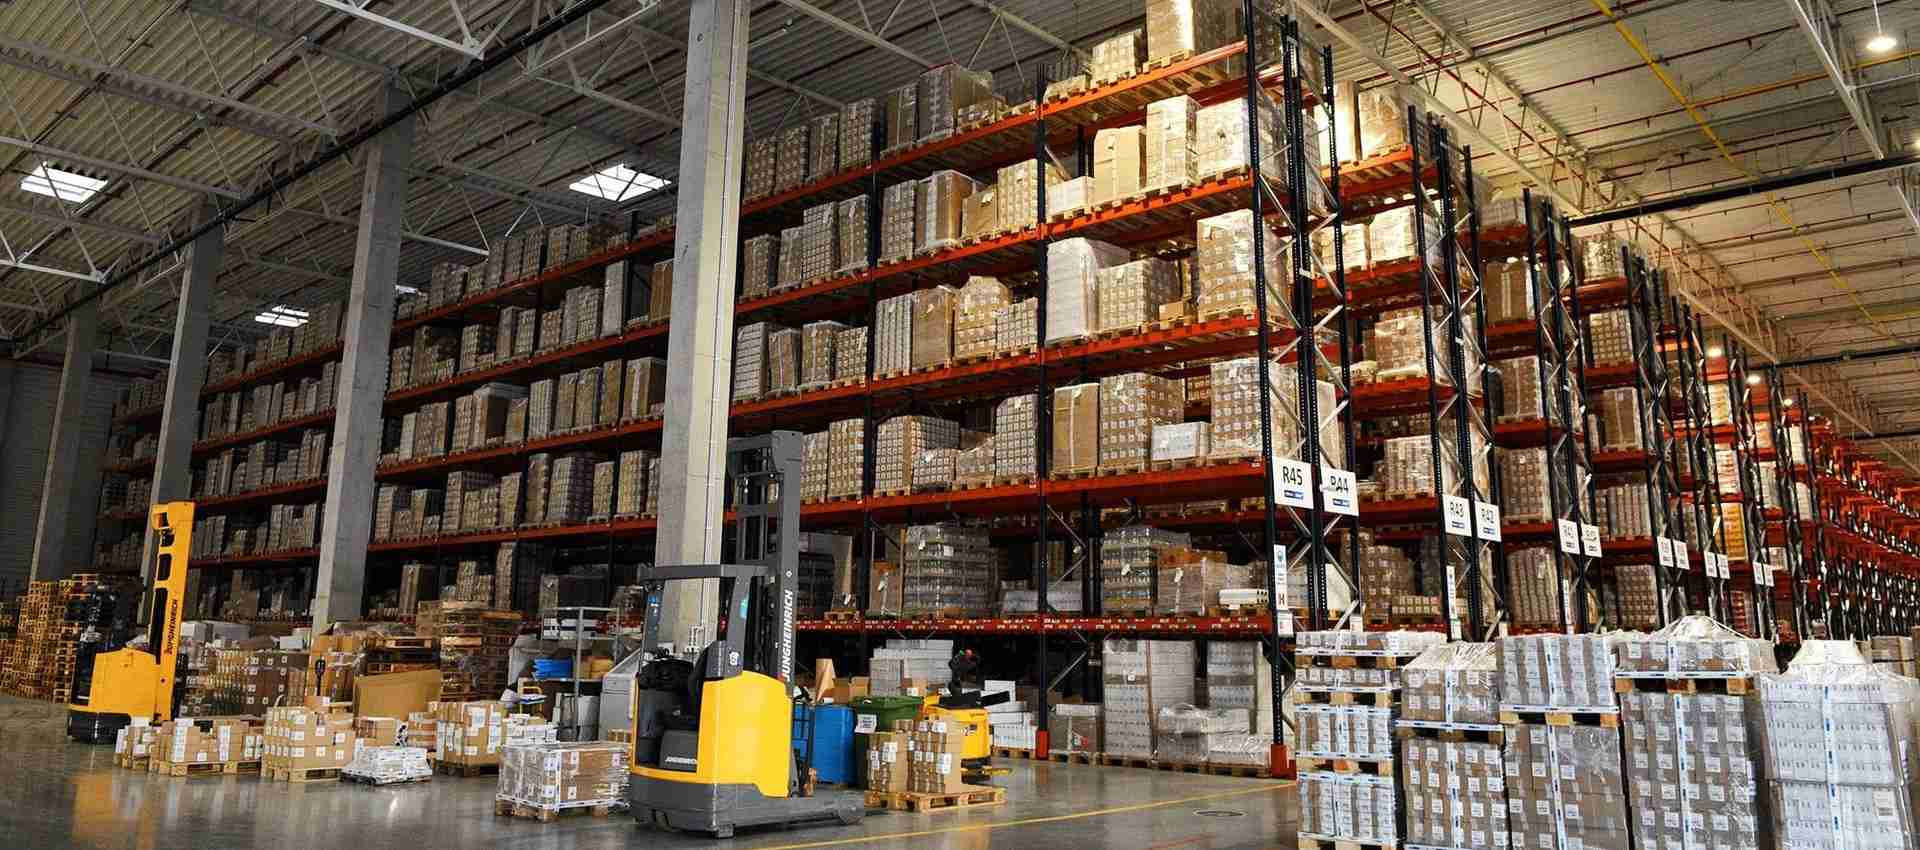 A Complete Guide to All Types of Warehouses (Part 1)